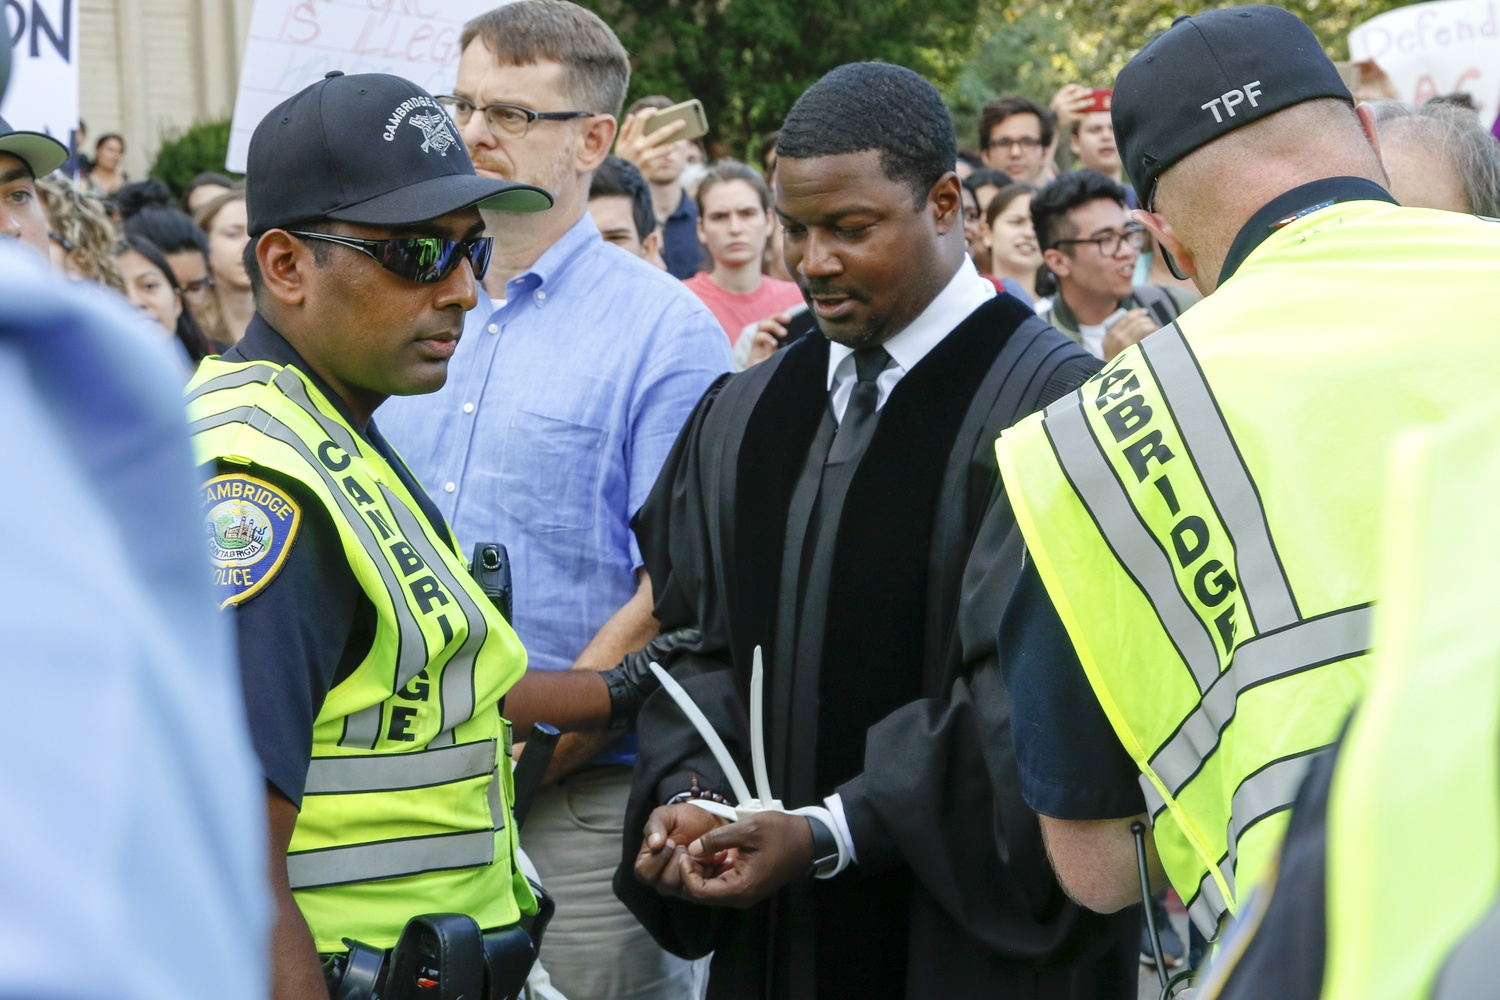 Reverend Jonathan L. Walton was arrested at a protest against the repeal of the Deferred Action for Childhood Arrivals program on Thursday afternoon.